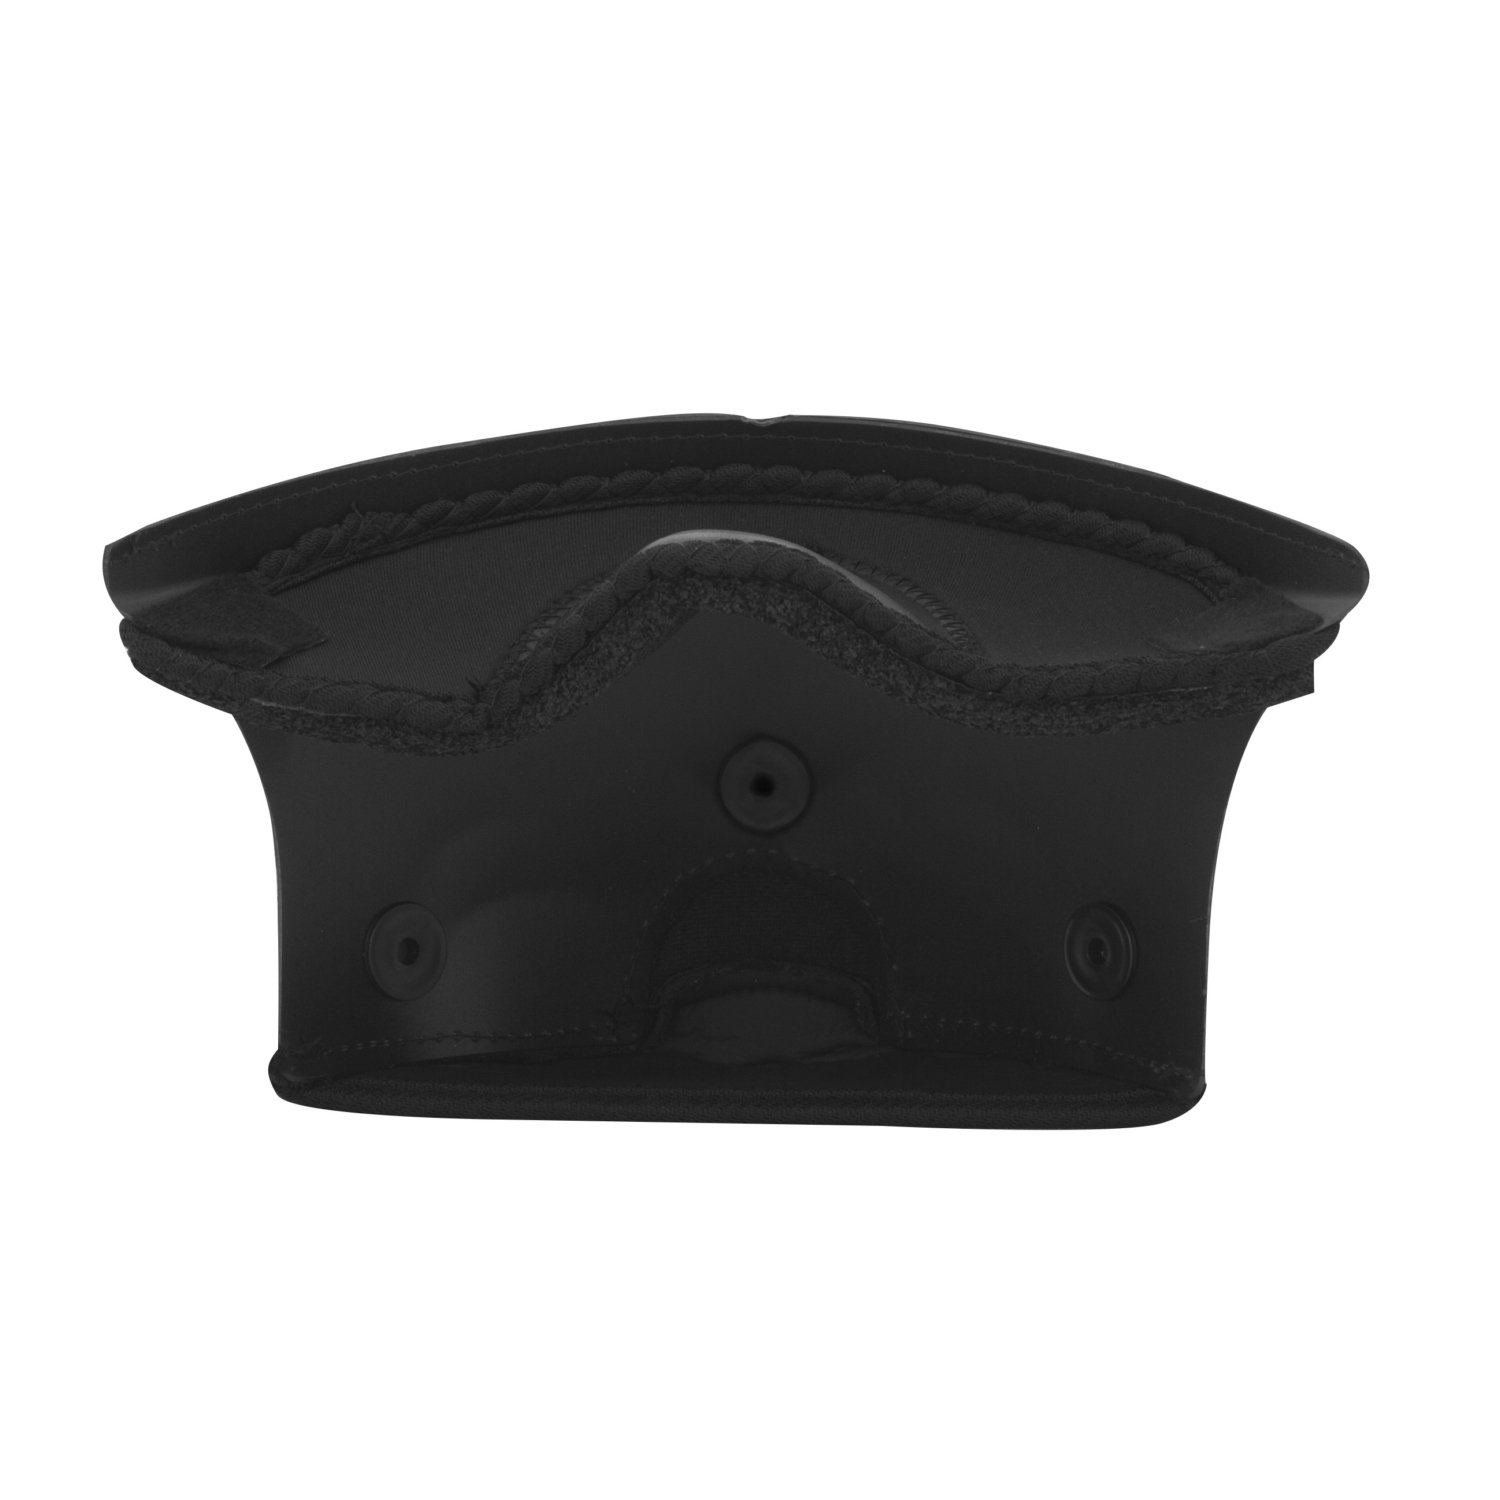 CKX Breath Guard for FLEX helmet One Size Fits All by CKX